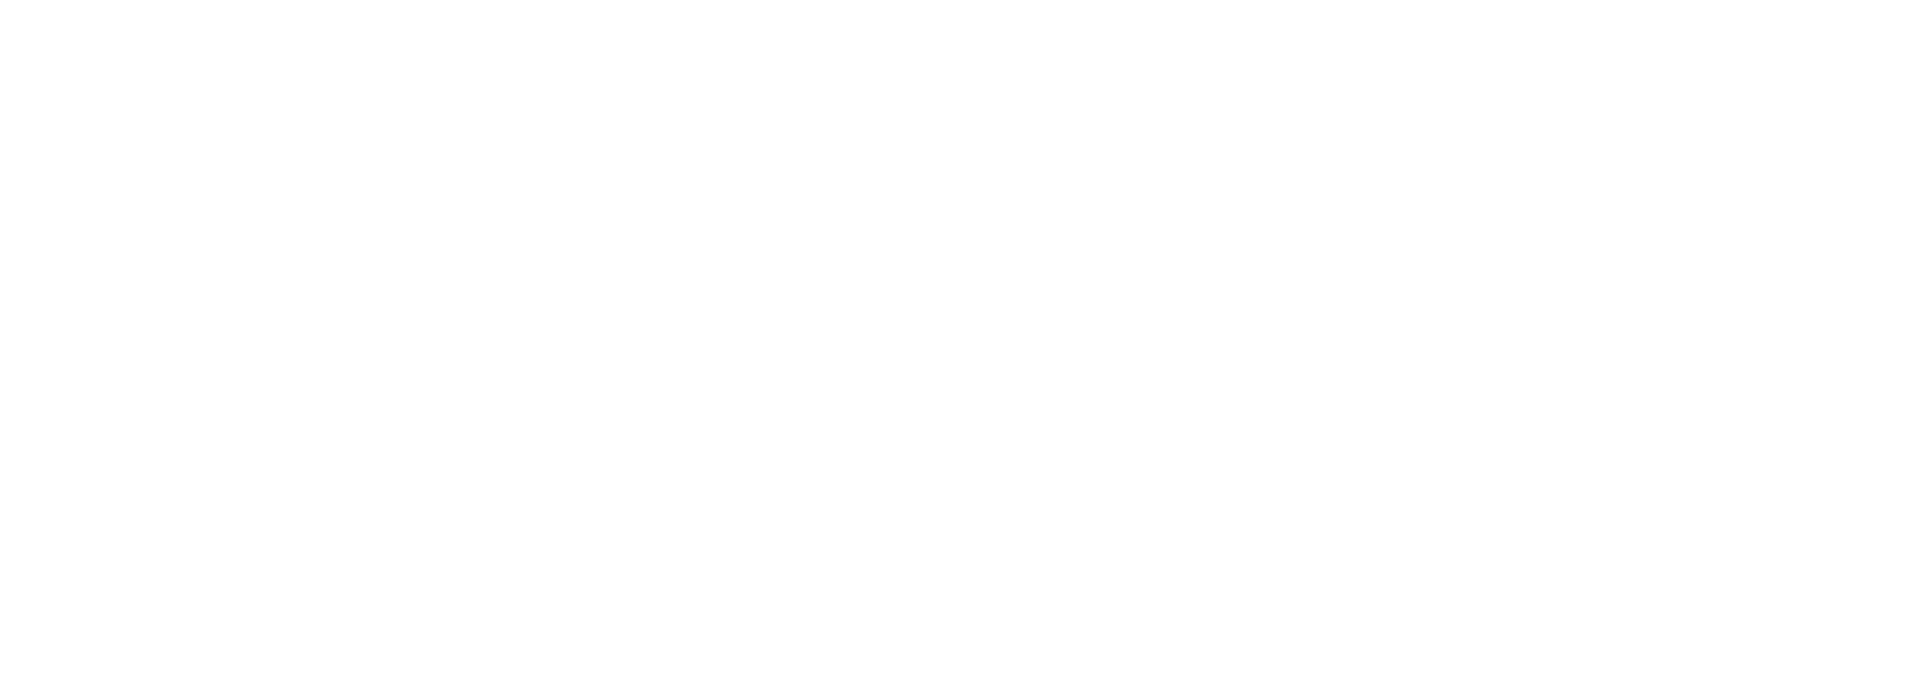 10,000 people qualify for social security every day